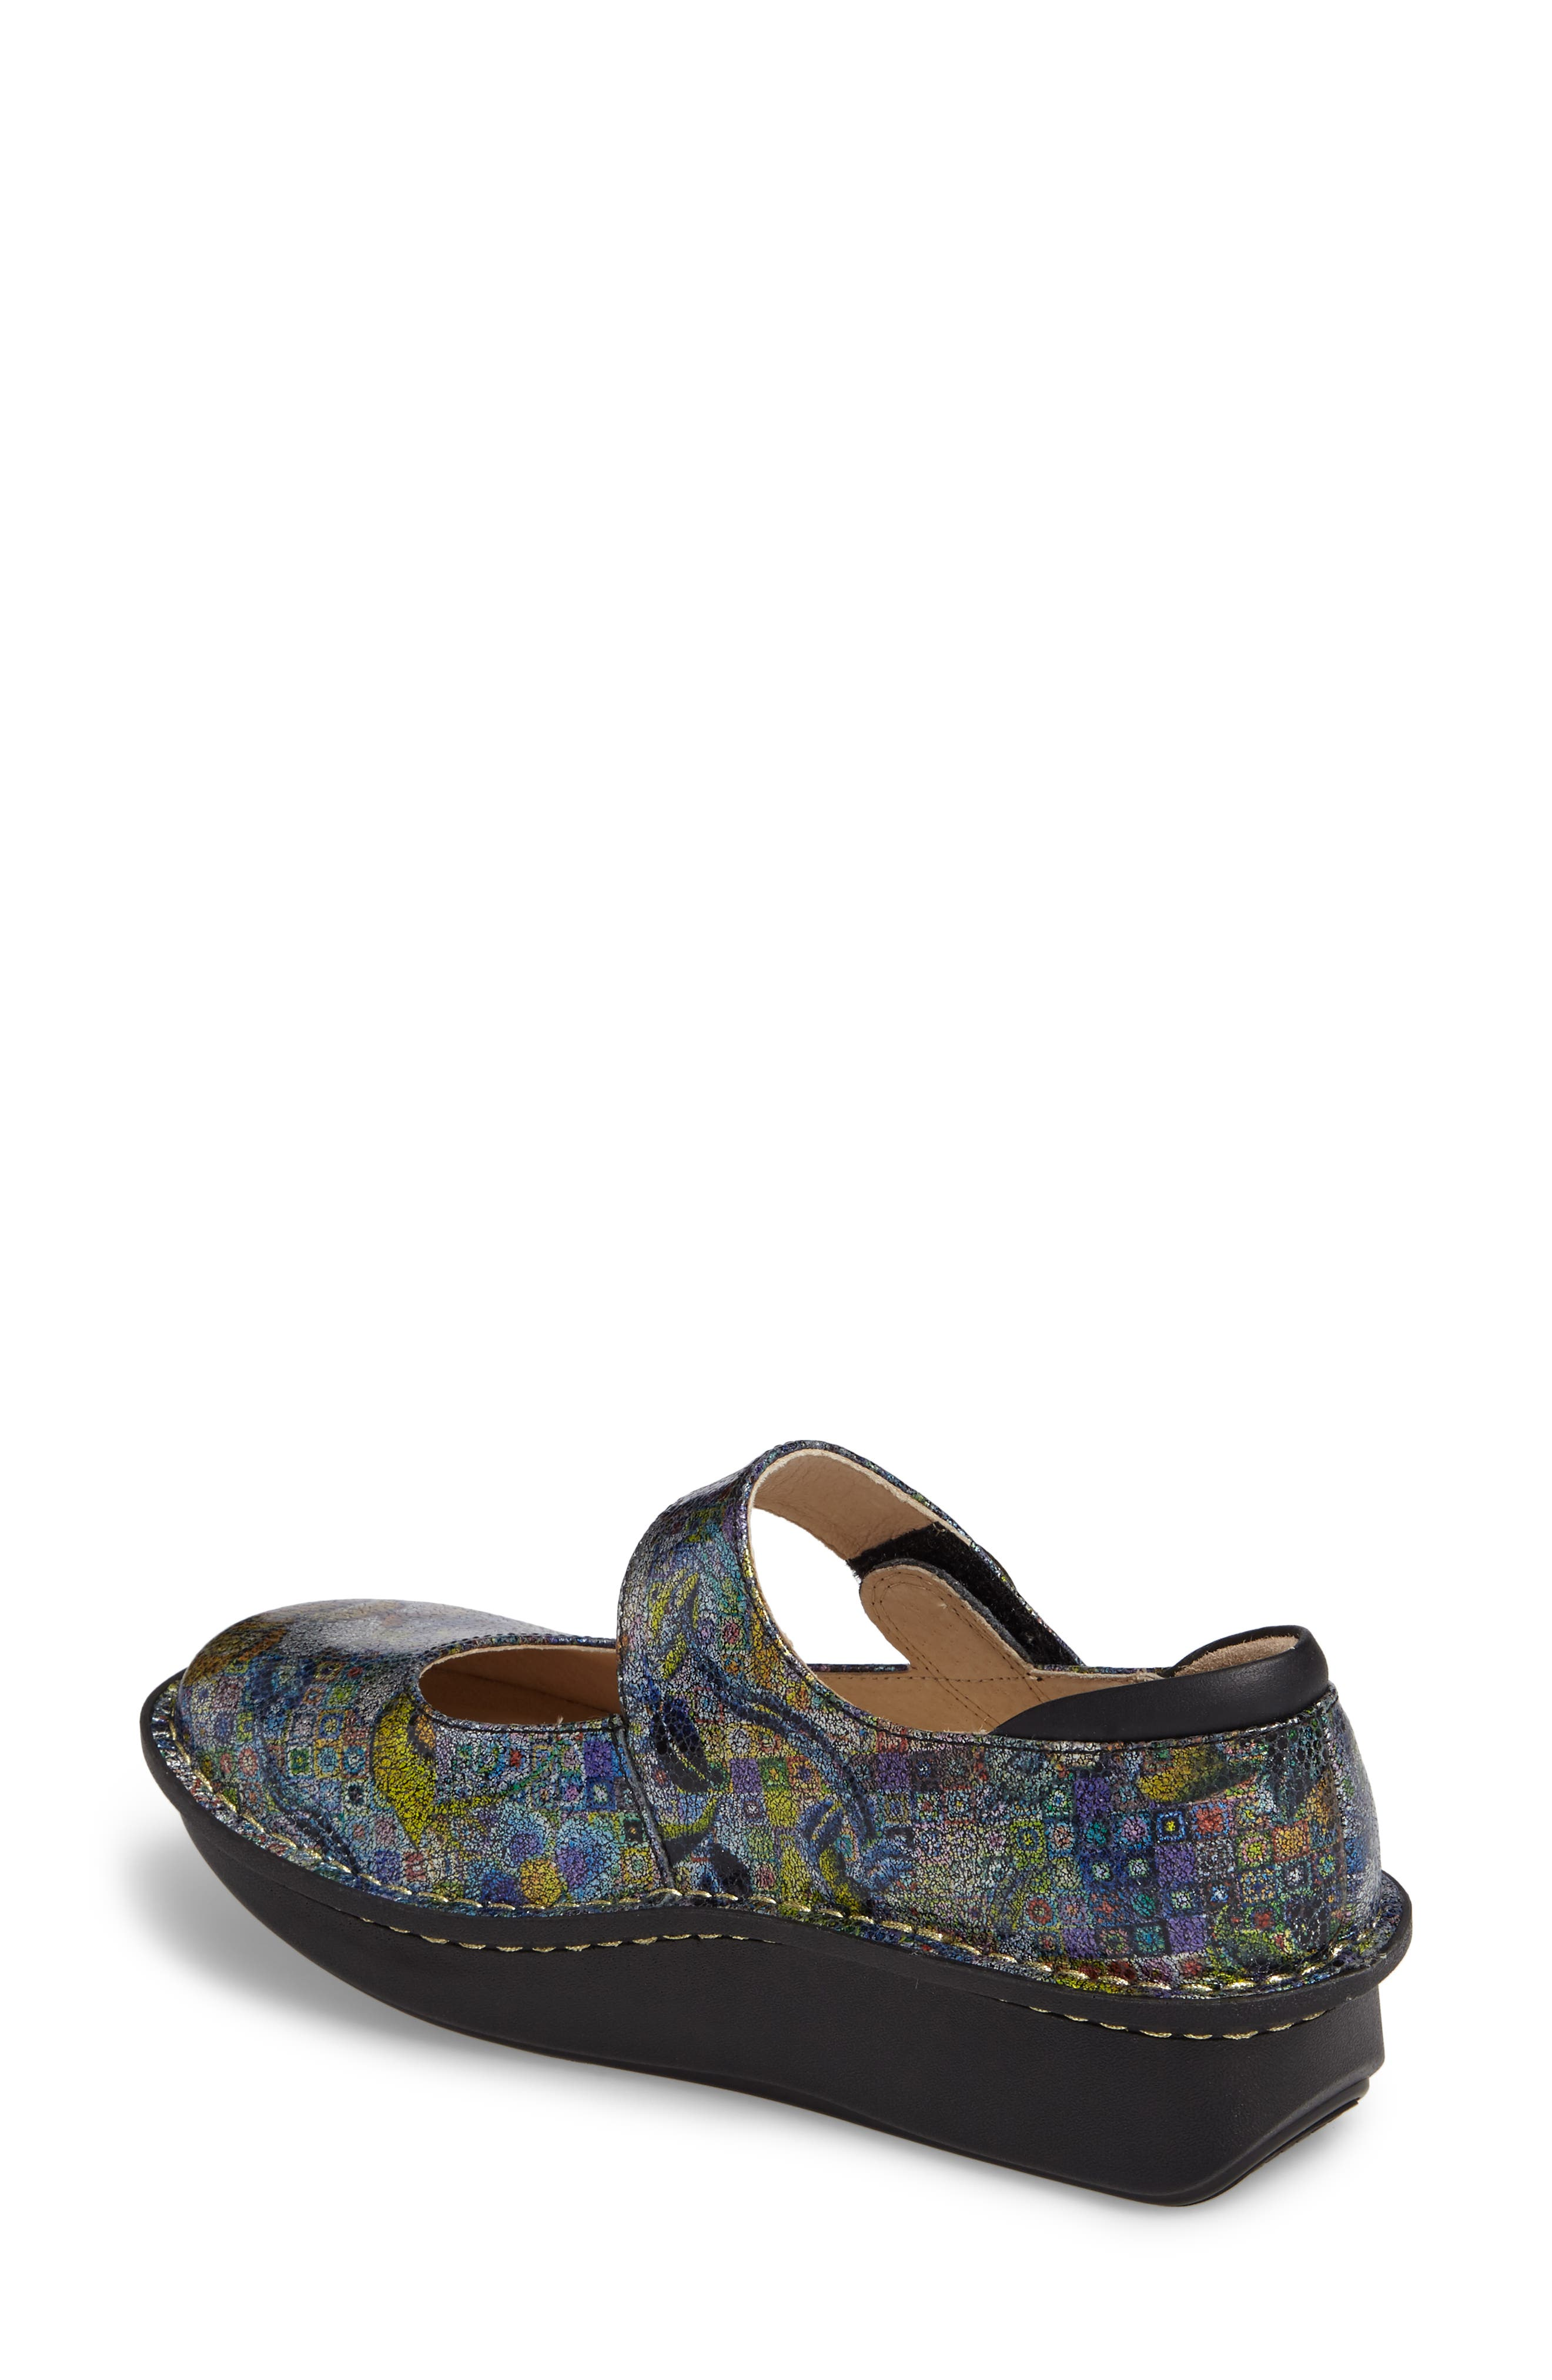 'Paloma' Slip-On,                             Alternate thumbnail 2, color,                             Gypsy Rose Leather